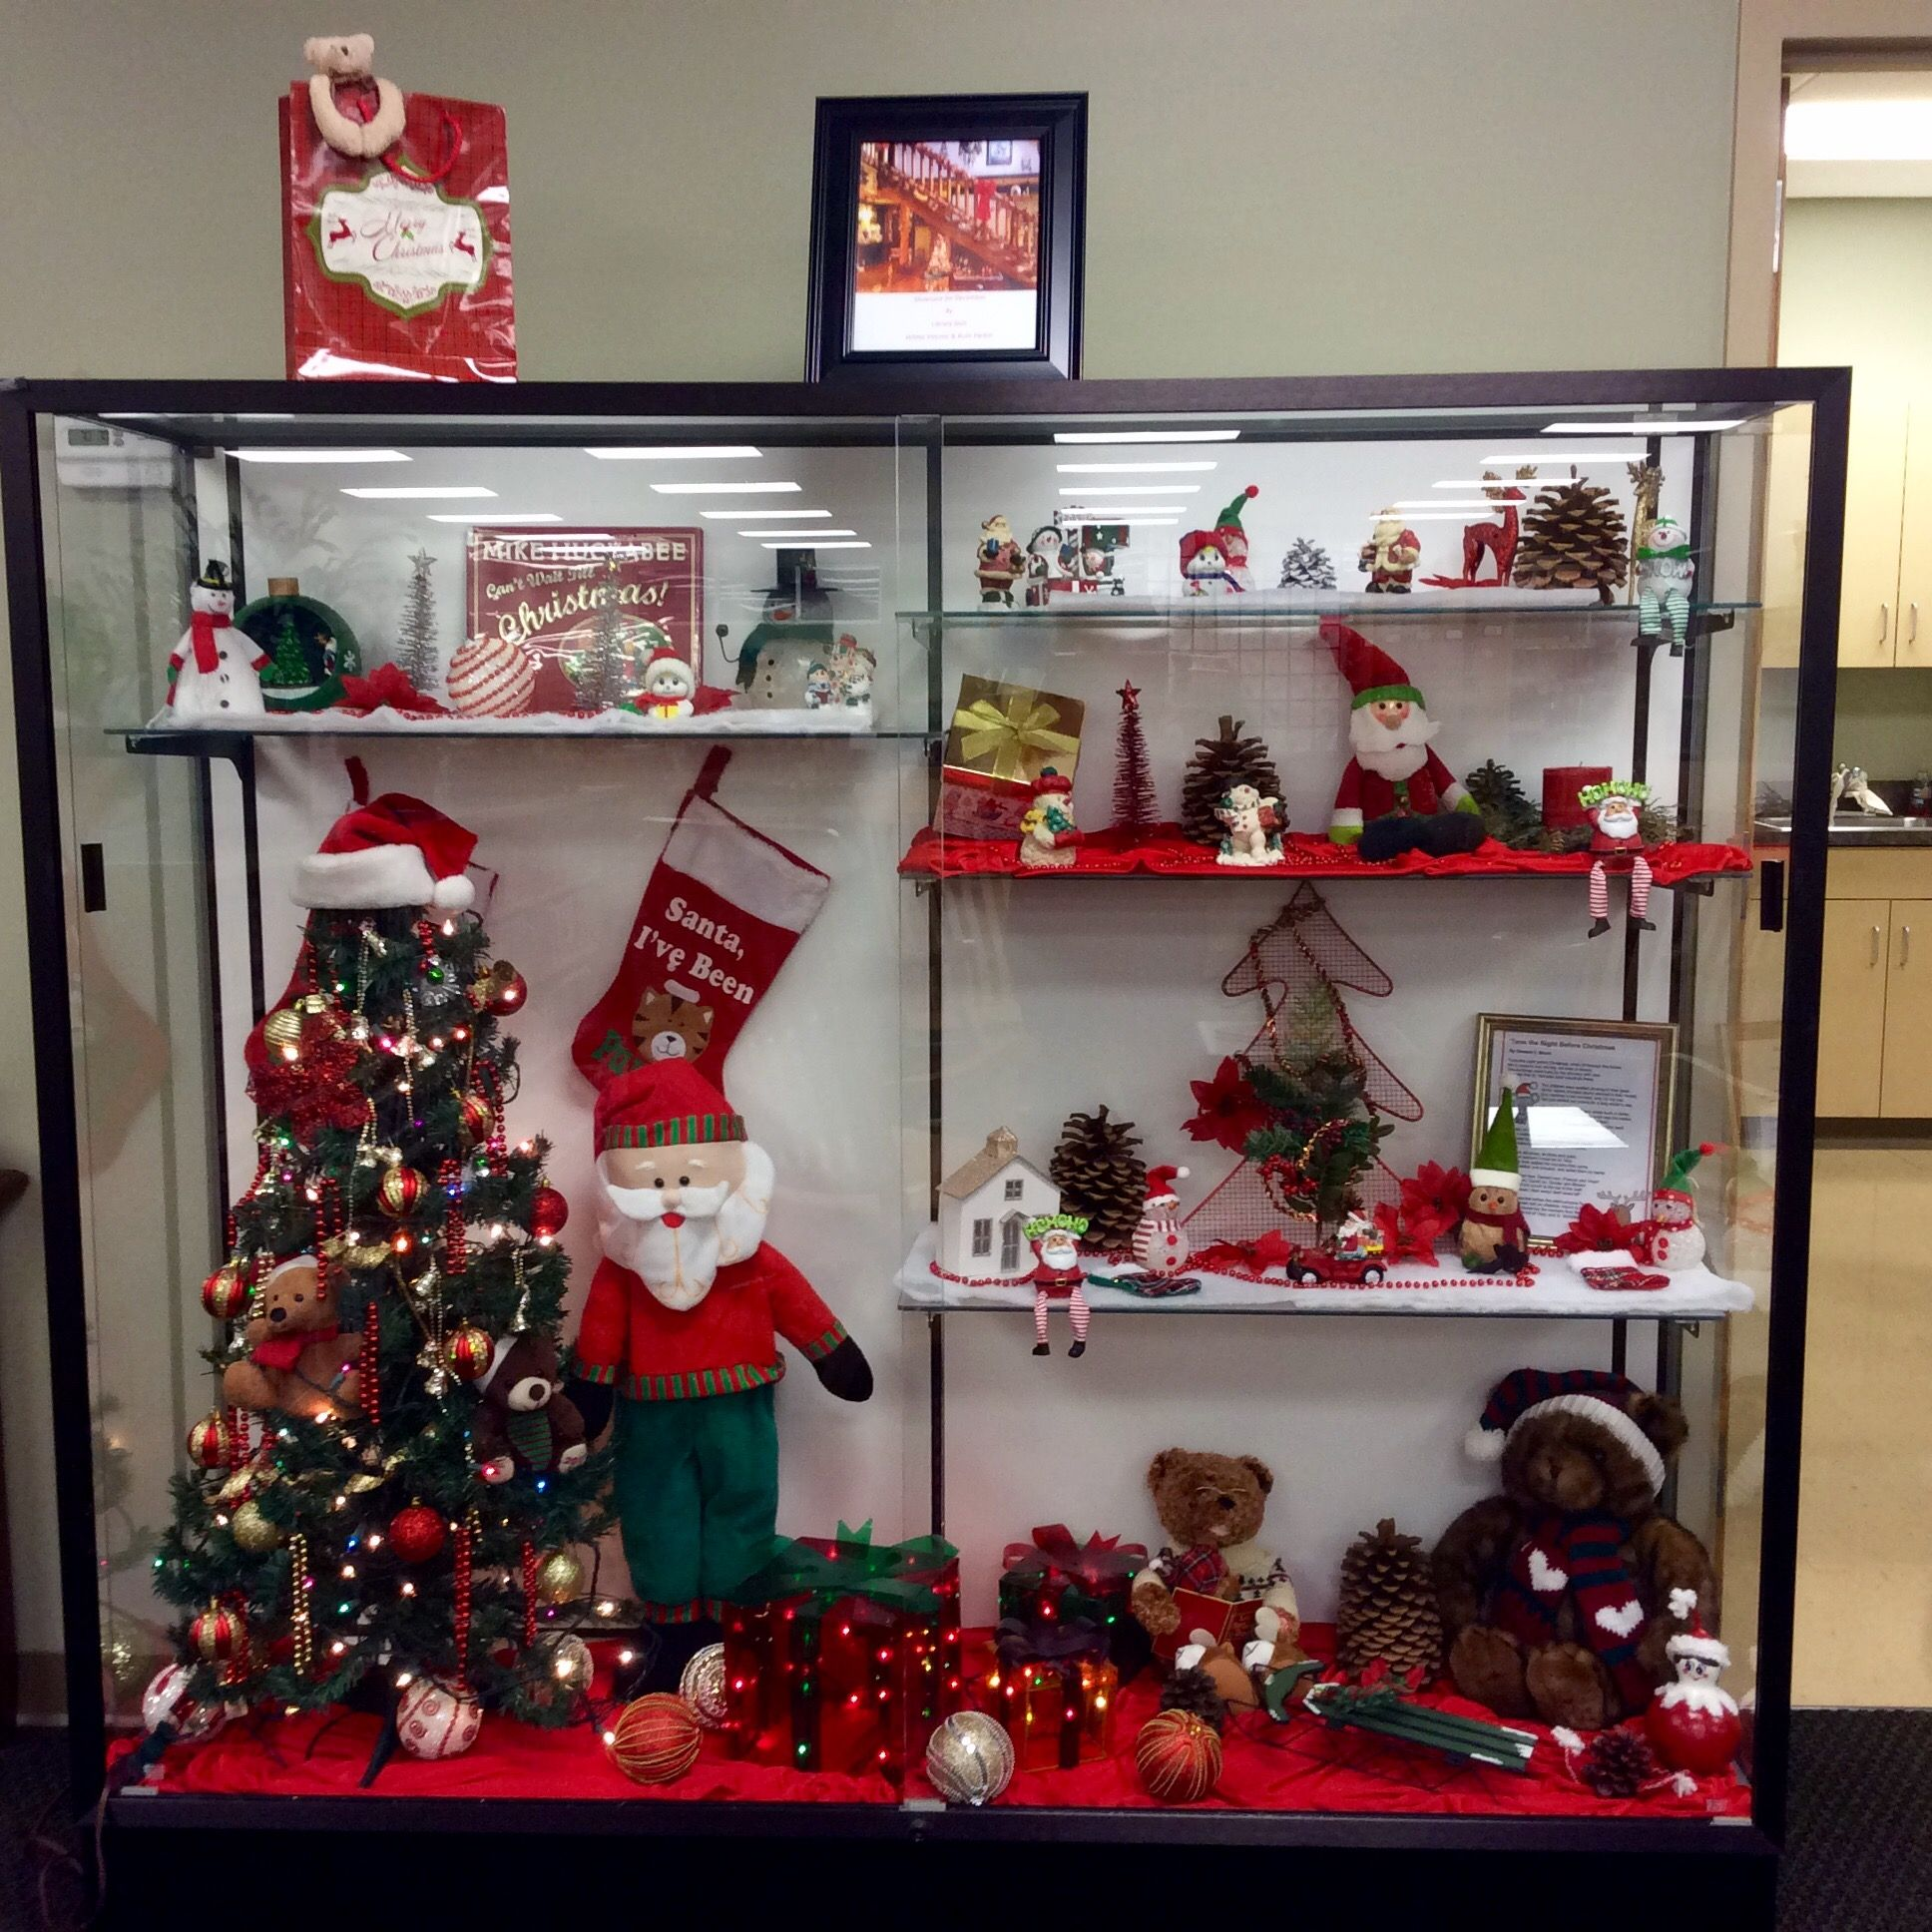 Christmas ornament display case - Explore Display Case Art And More